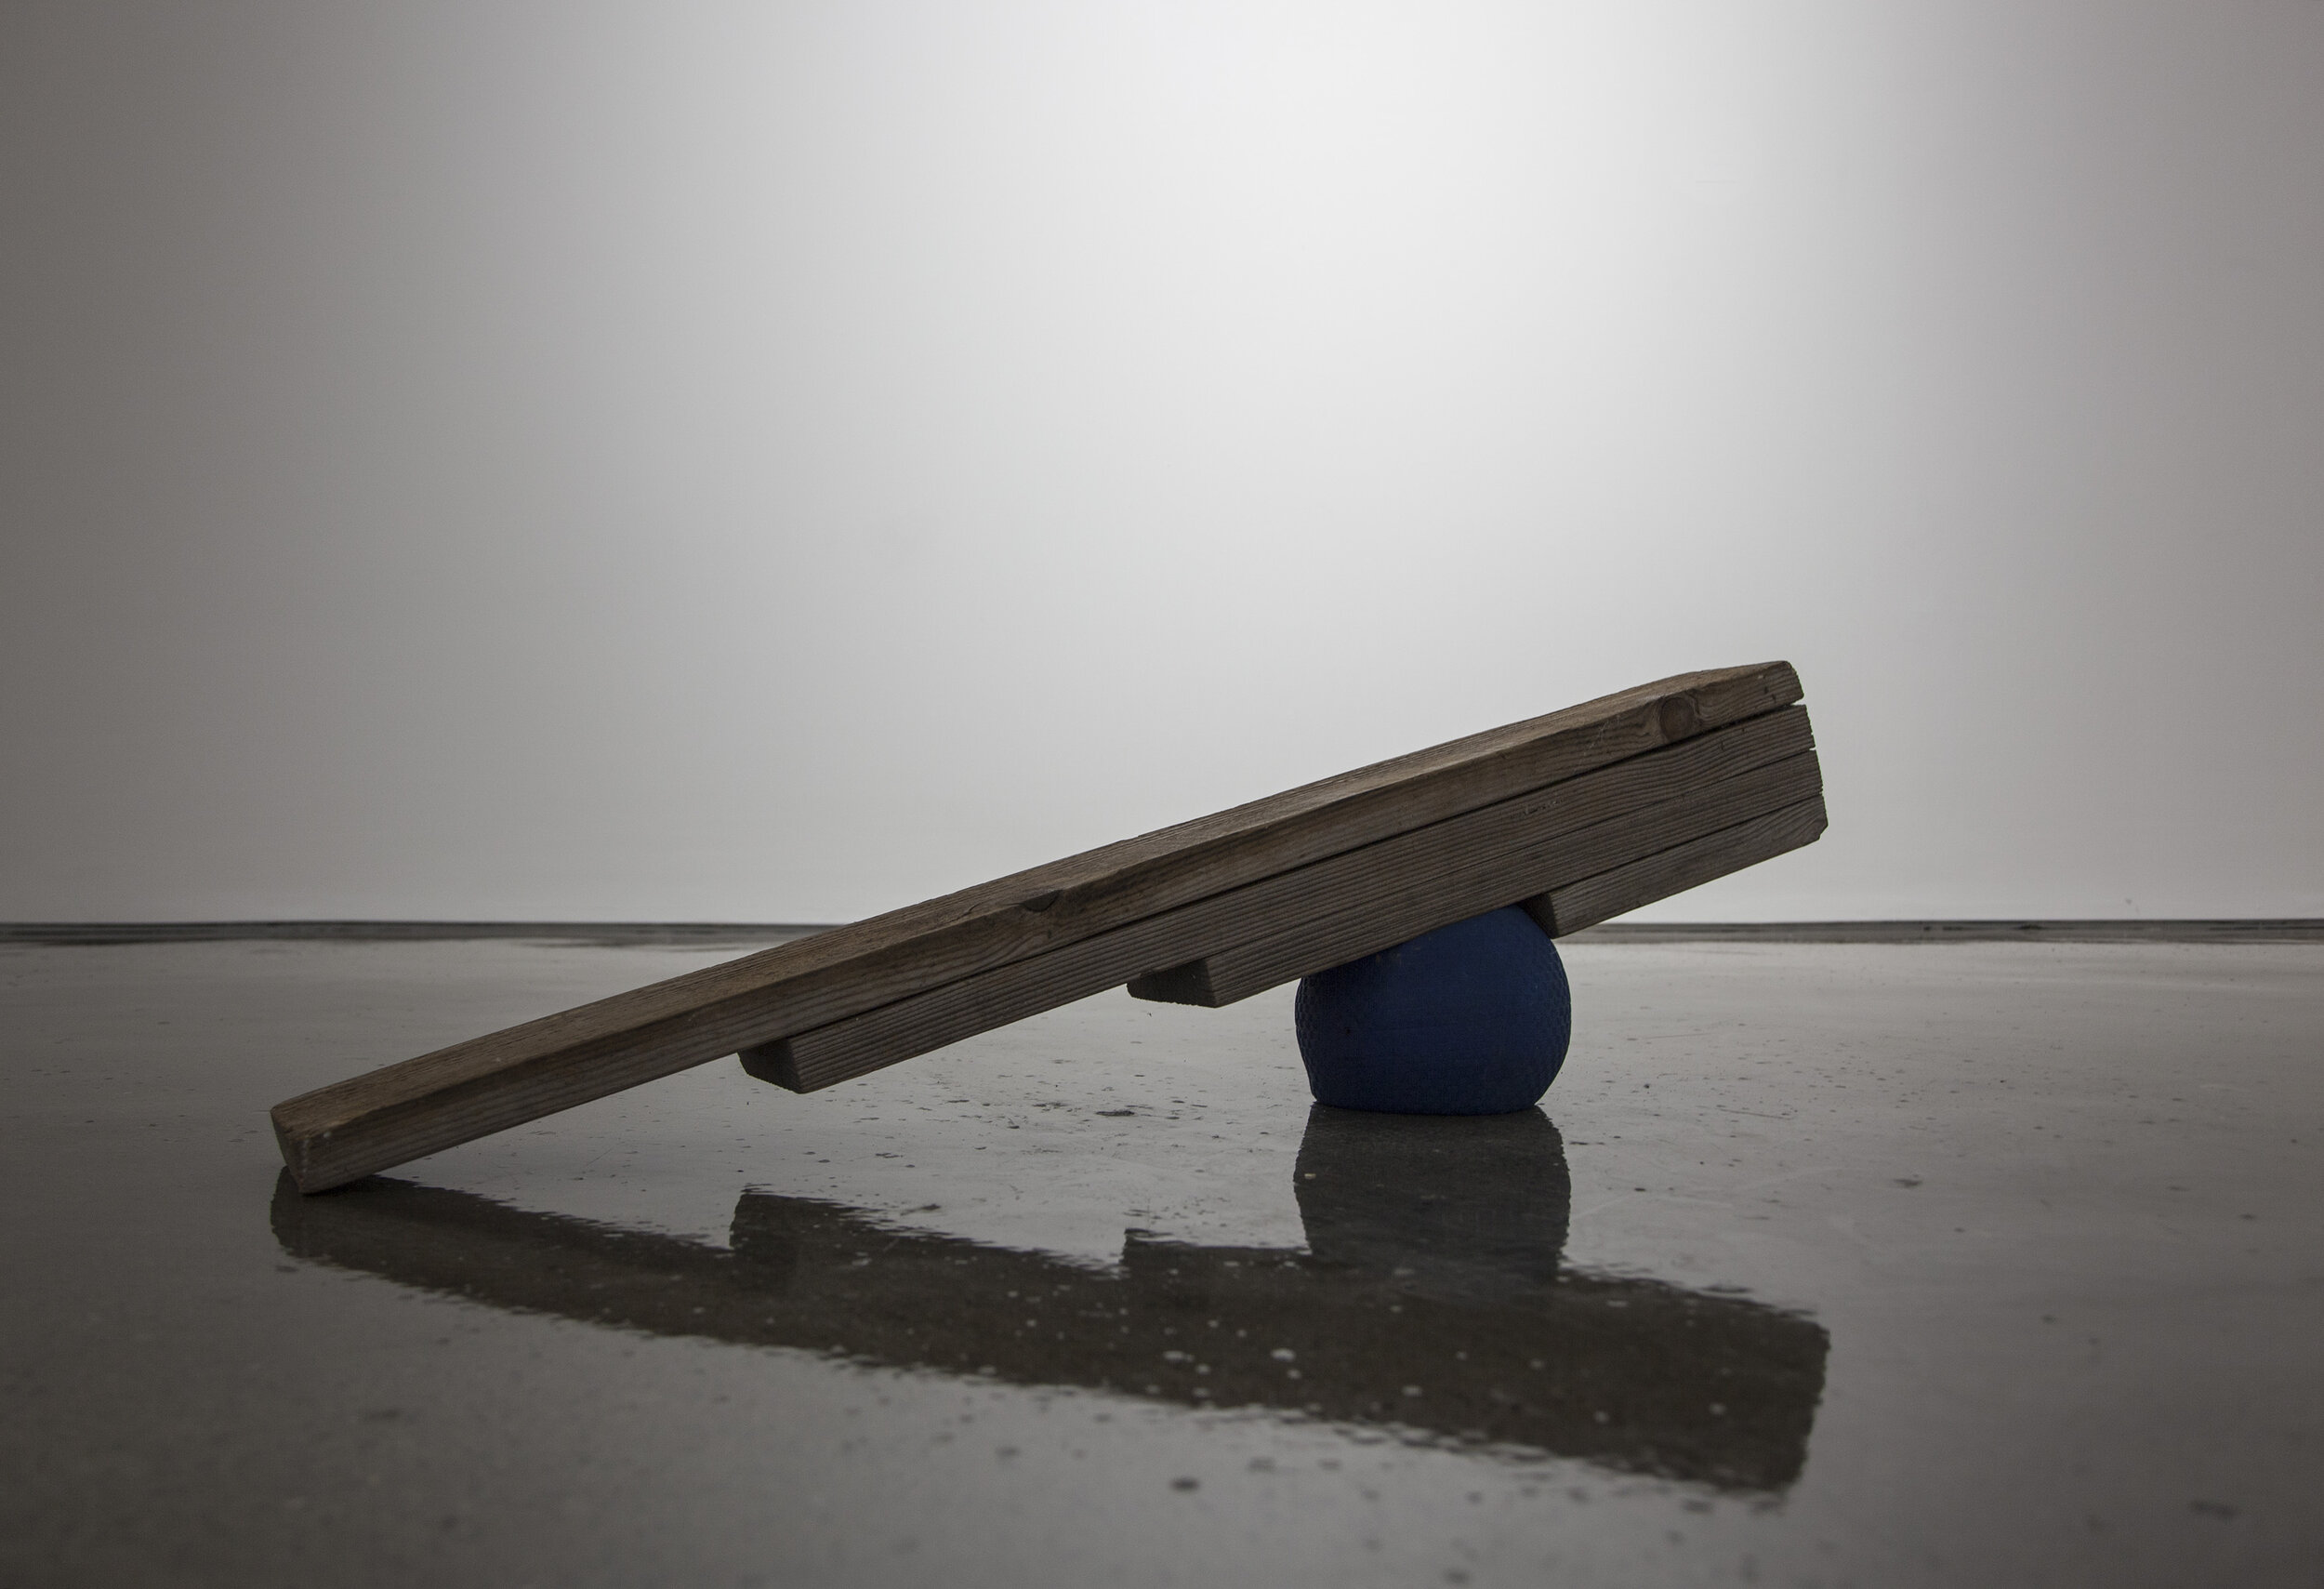 Pressured Ball , 2014, wood, ball, air, 50 x 0 x 12 inches.